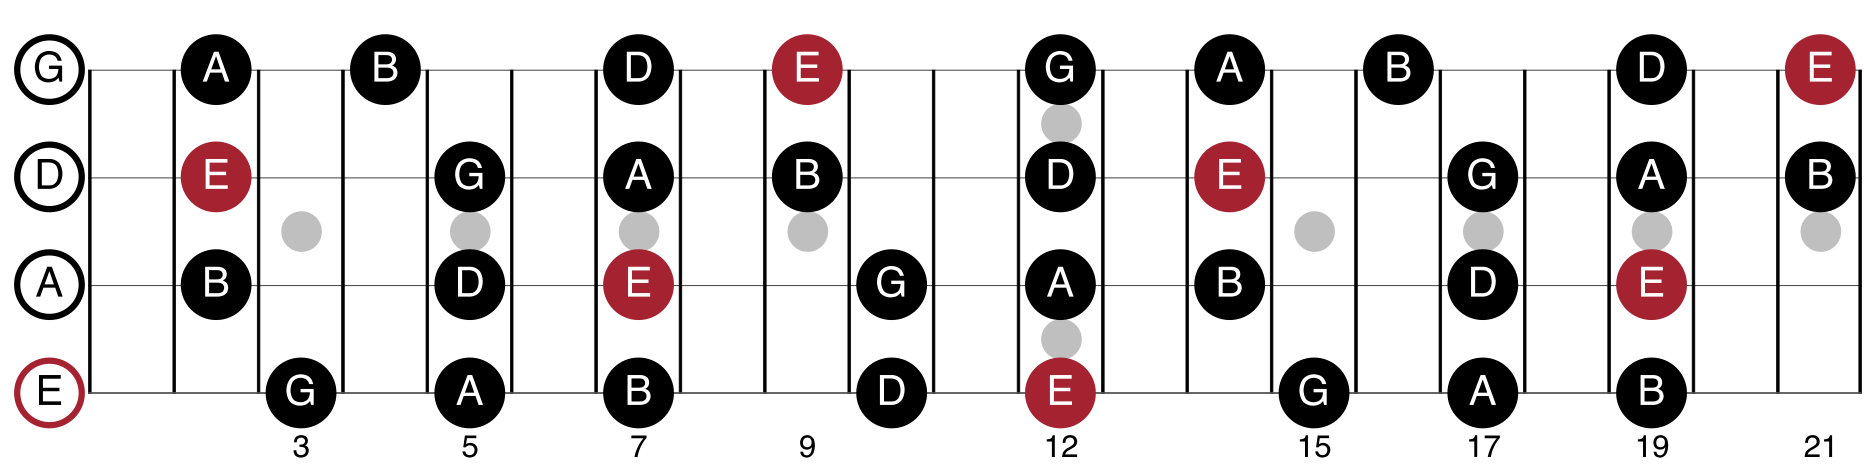 E Minor Pentatonic Scale Shapes For Bass Guitar